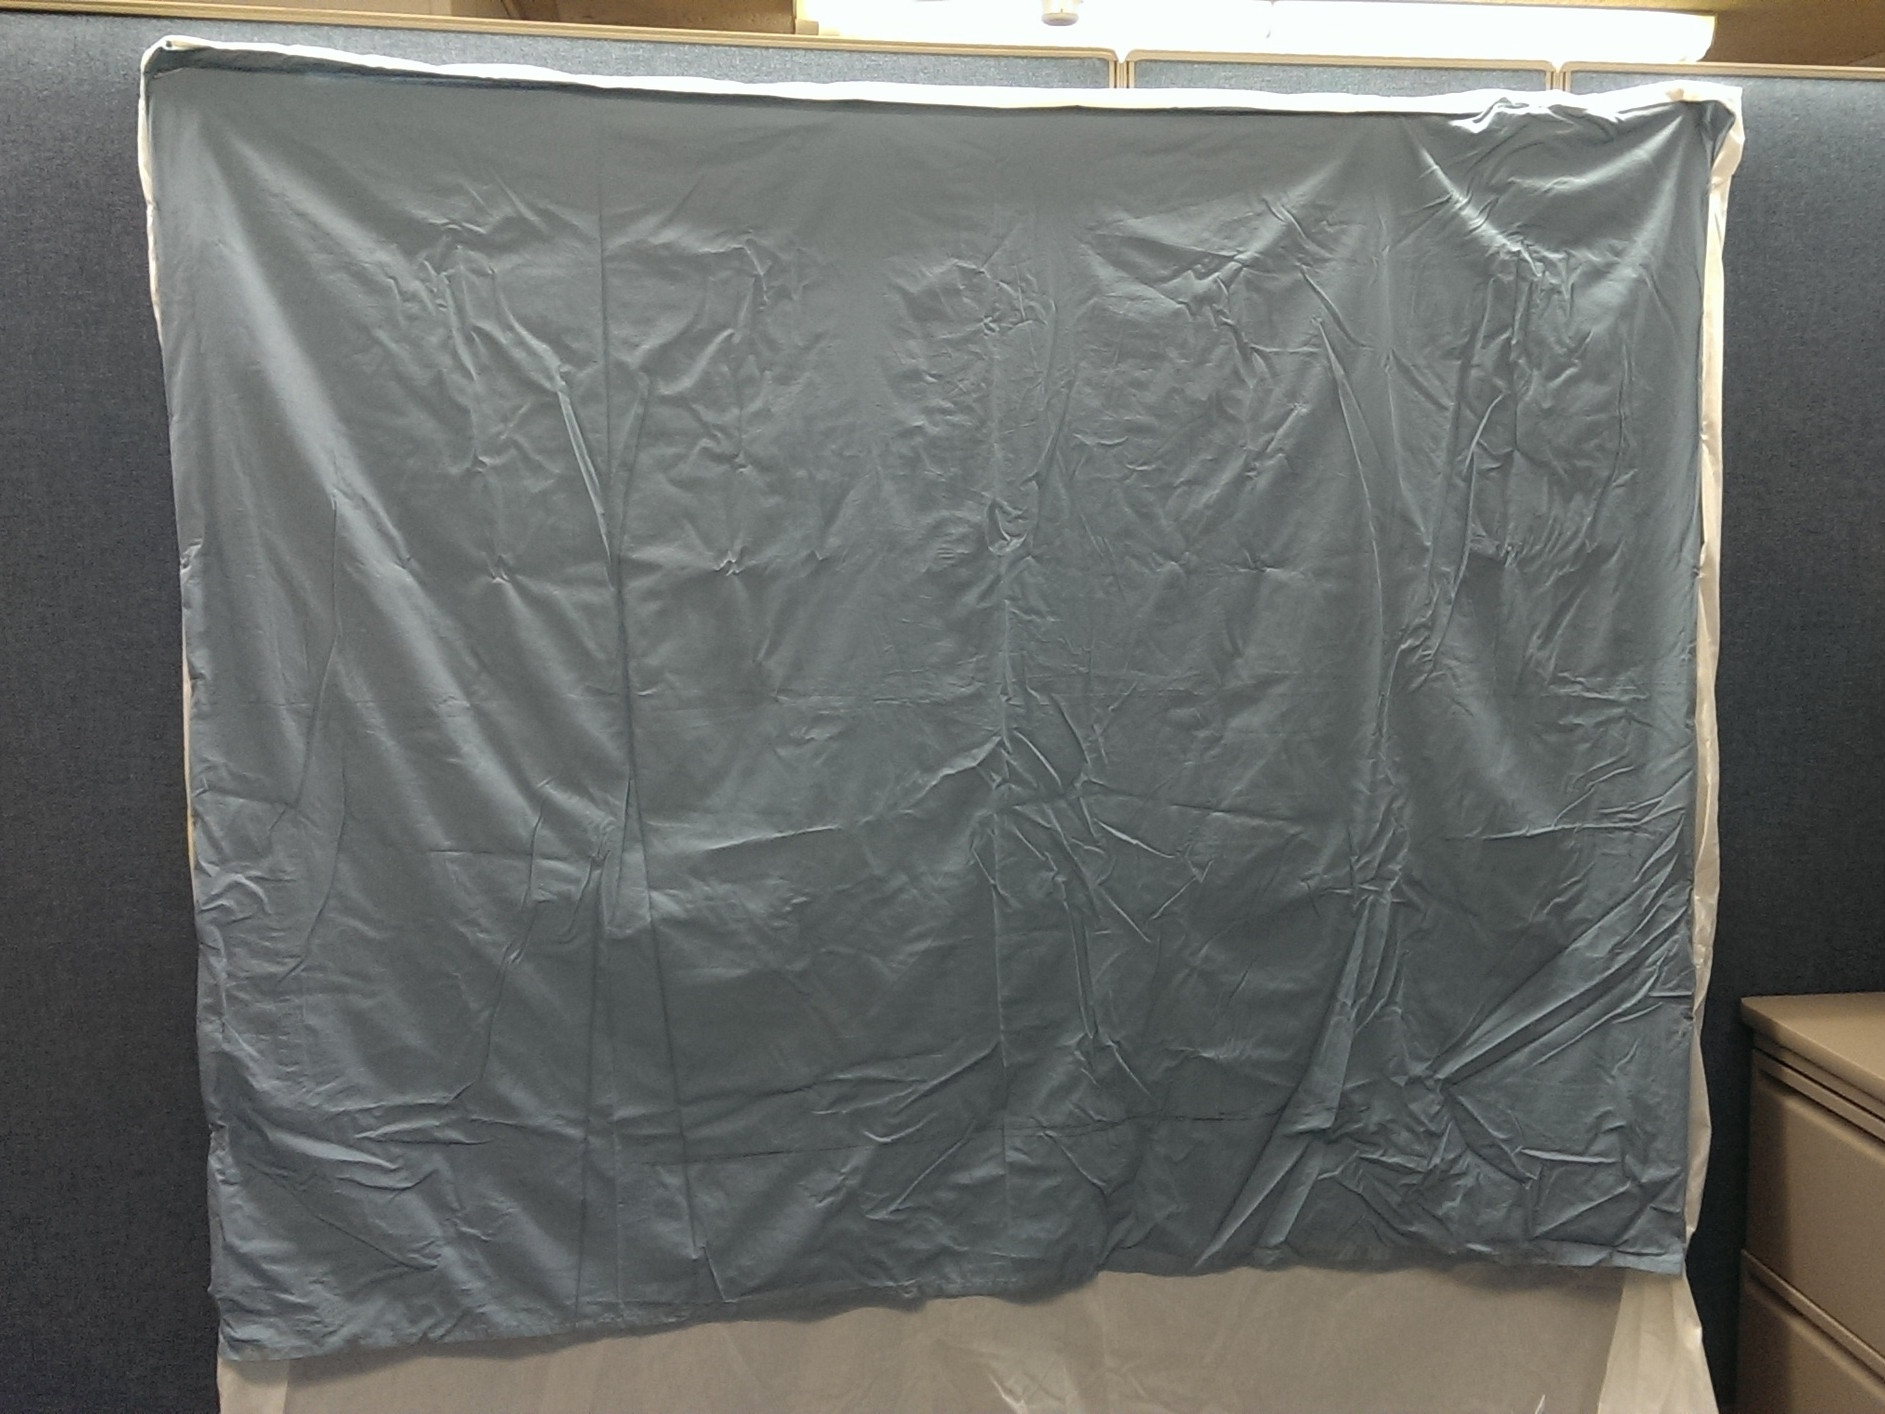 Hanging the sheet on the cubicle wall. Getting ready to paint